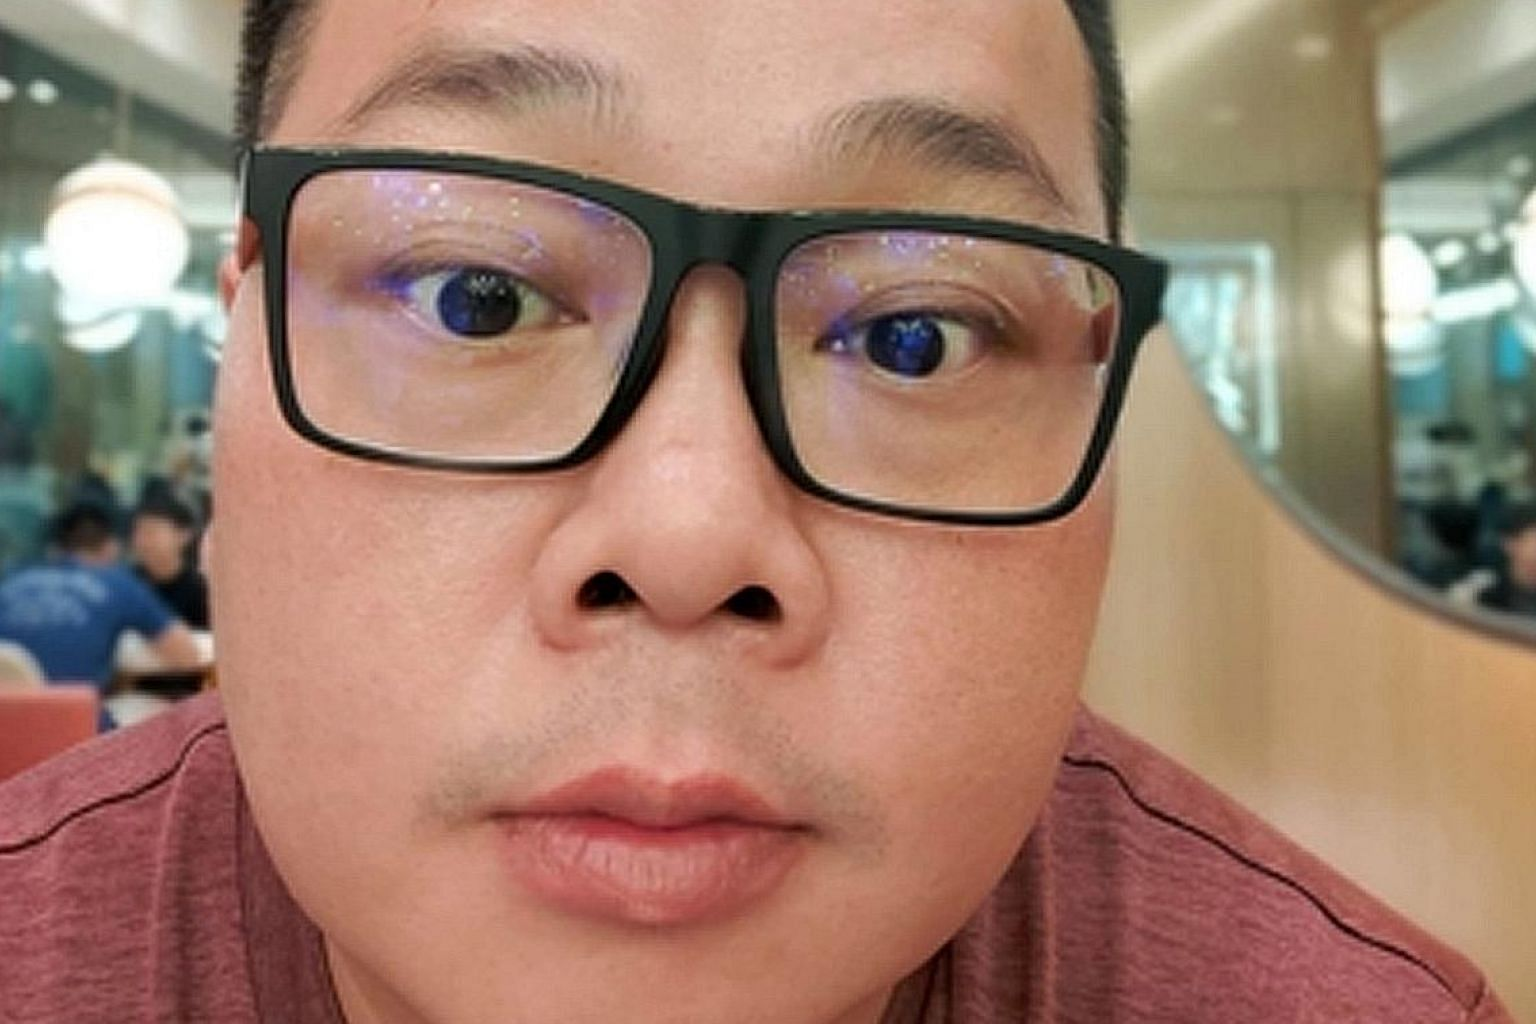 Dickson Yeo Jun Wei has pleaded guilty in the US to one count of acting within the country as an illegal foreign agent.